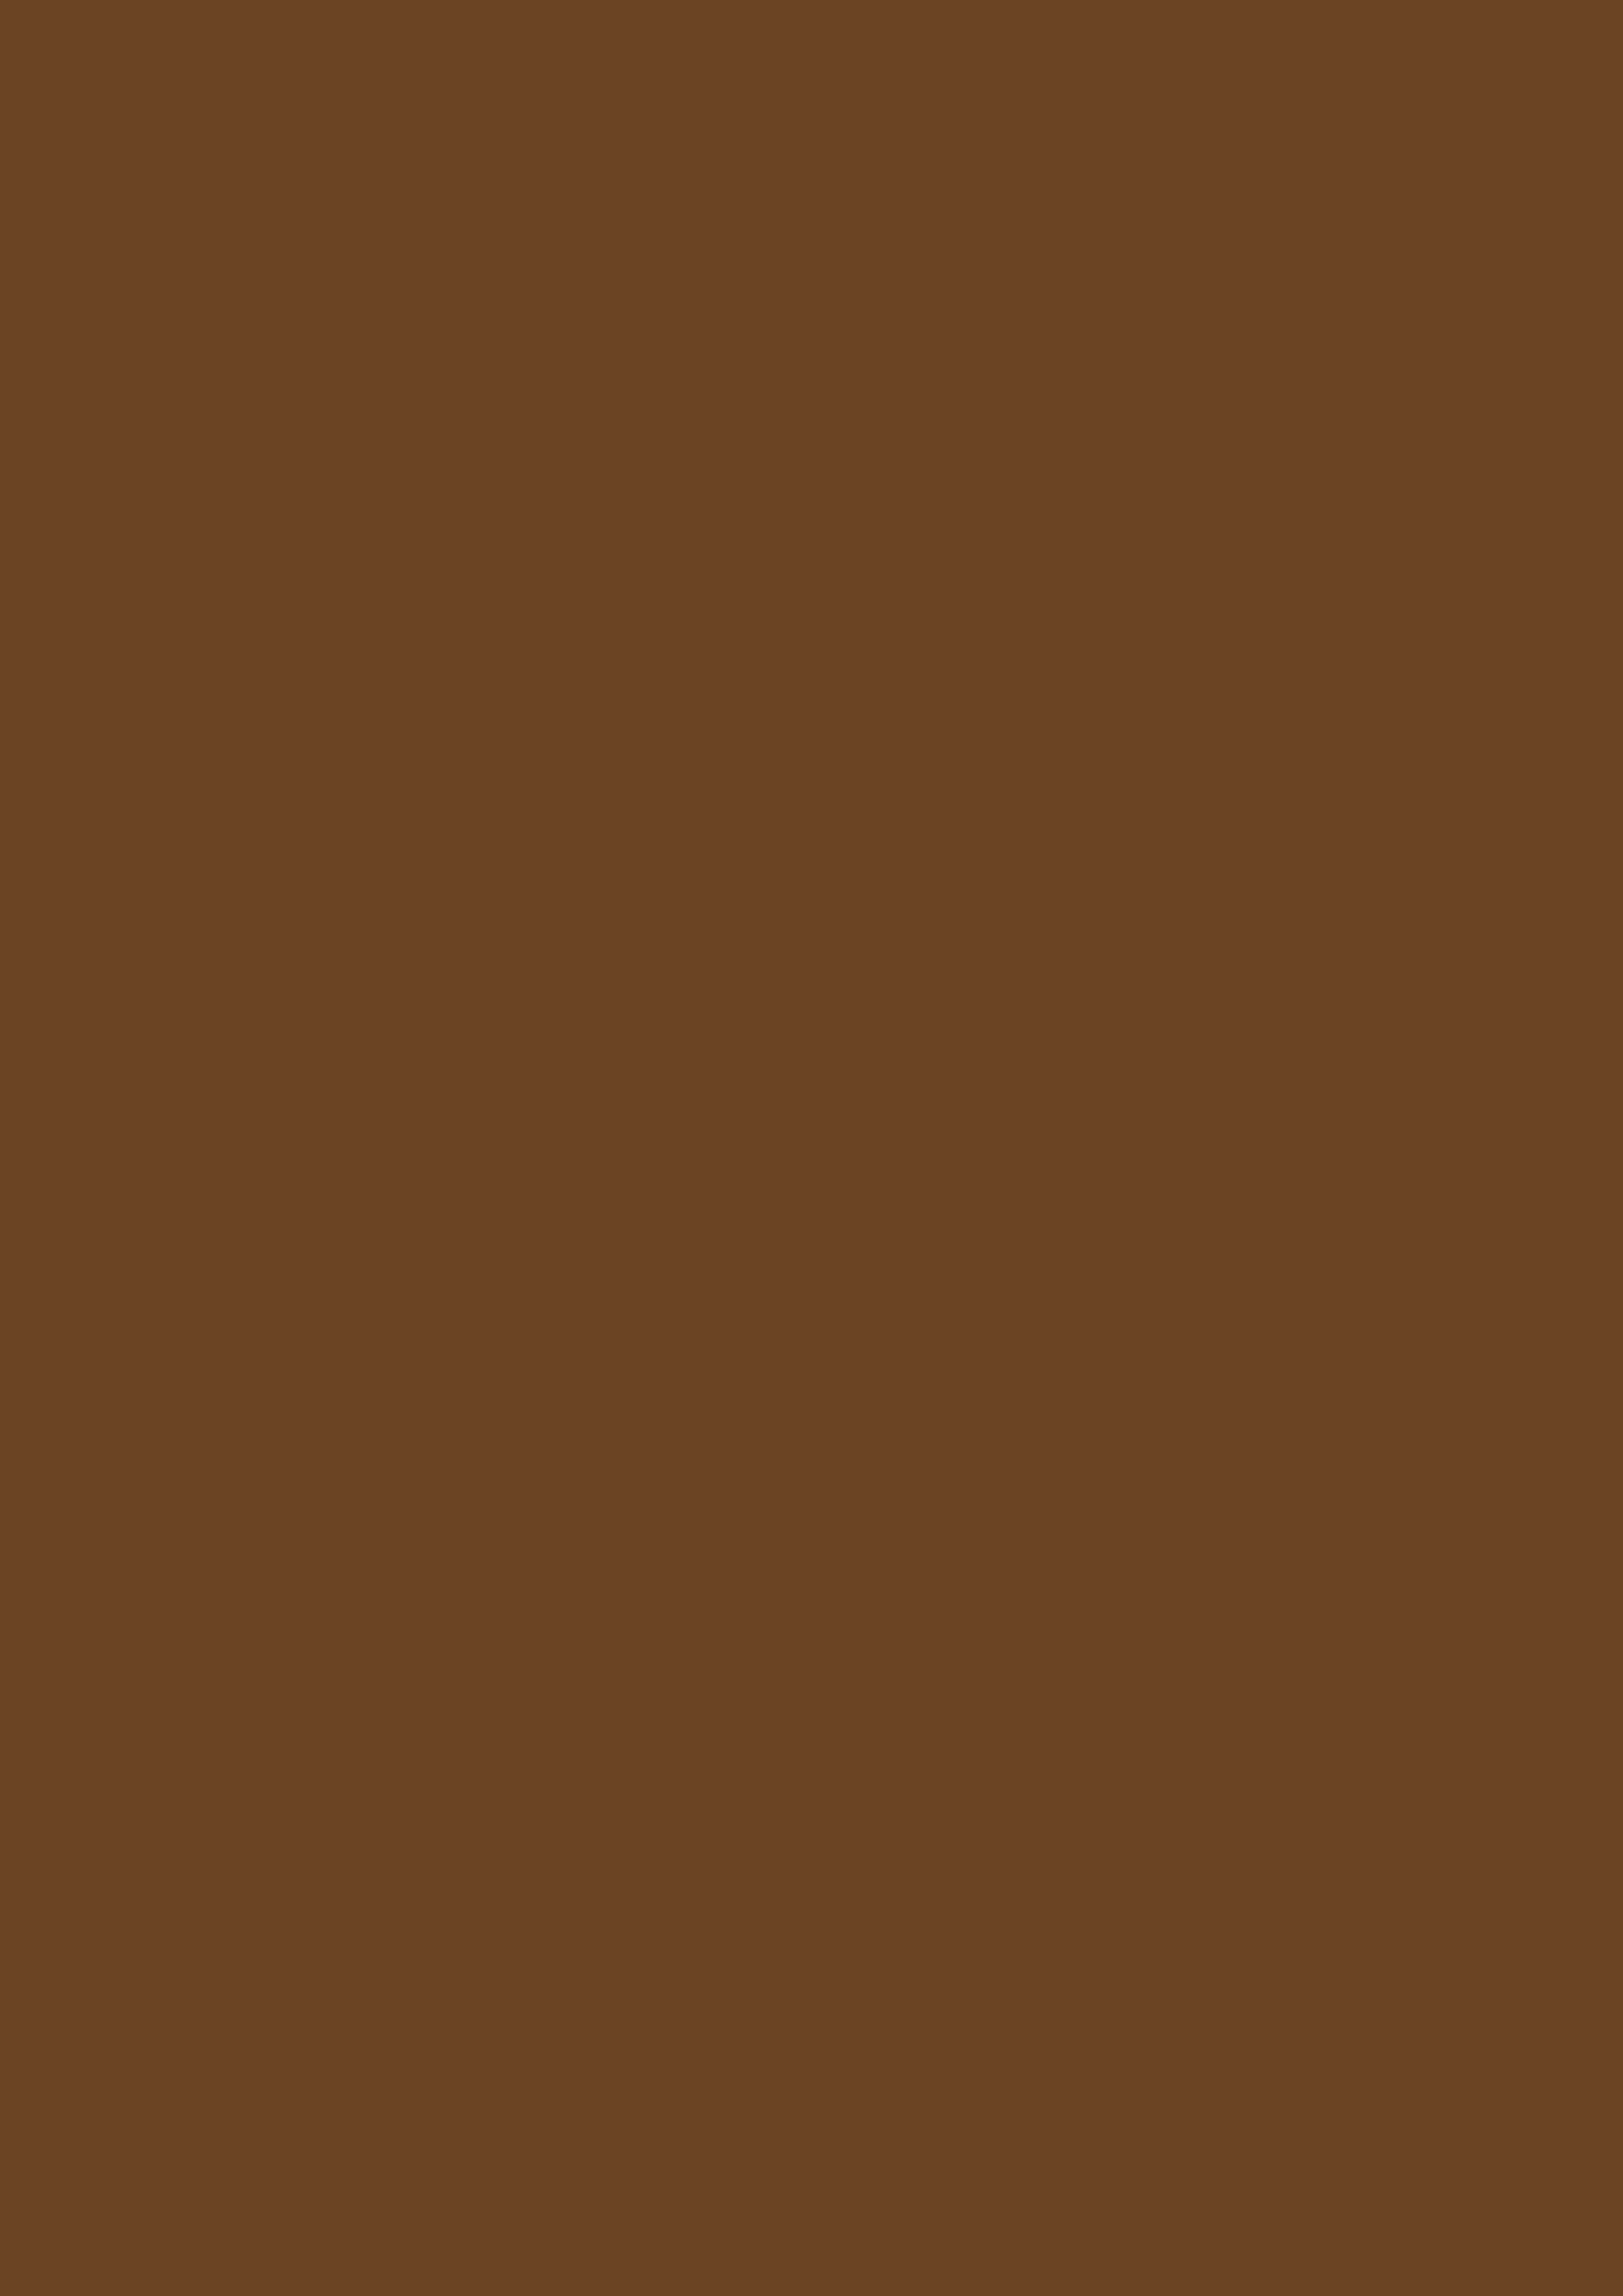 2480x3508 Flattery Solid Color Background